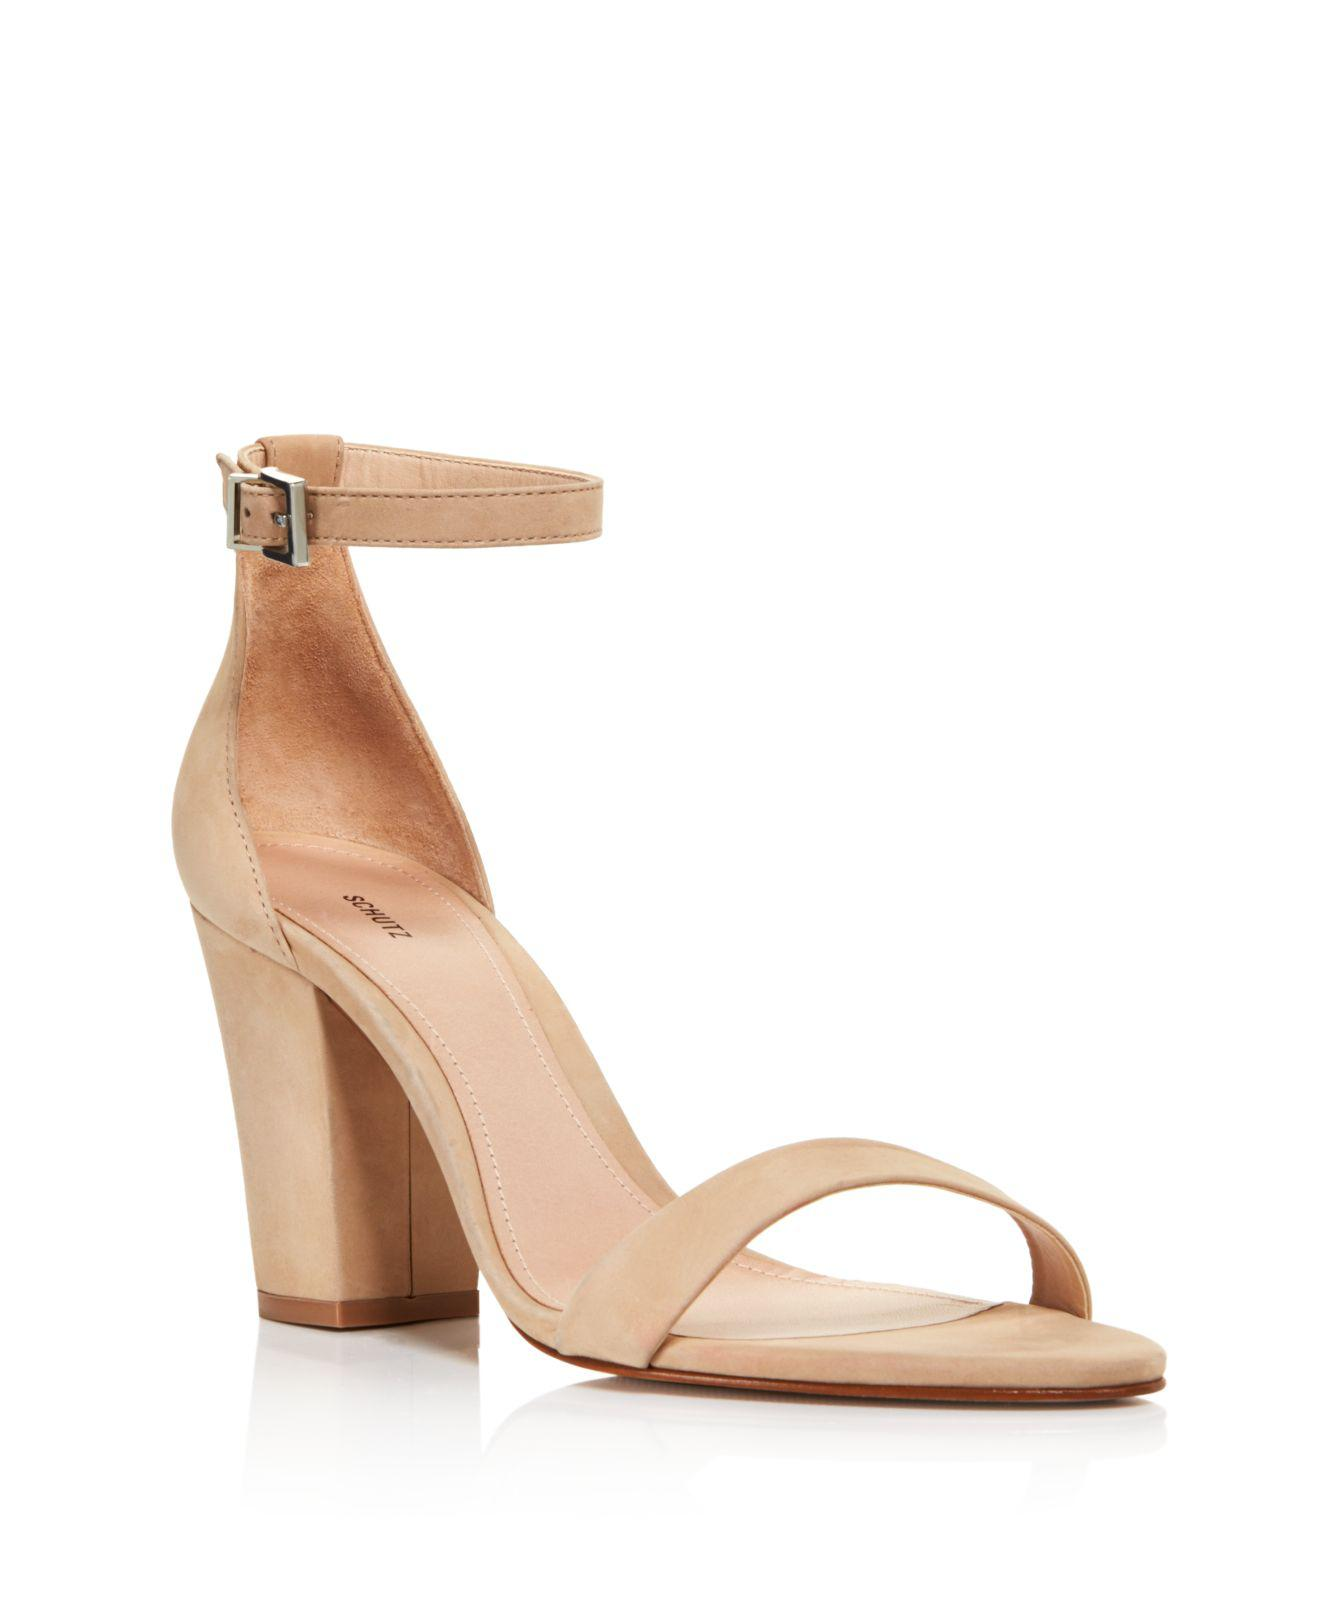 Schutz Suede Ankle-Strap Sandals in China sale online clearance cheap price outlet limited edition comfortable cheap online dU25XhqtxK